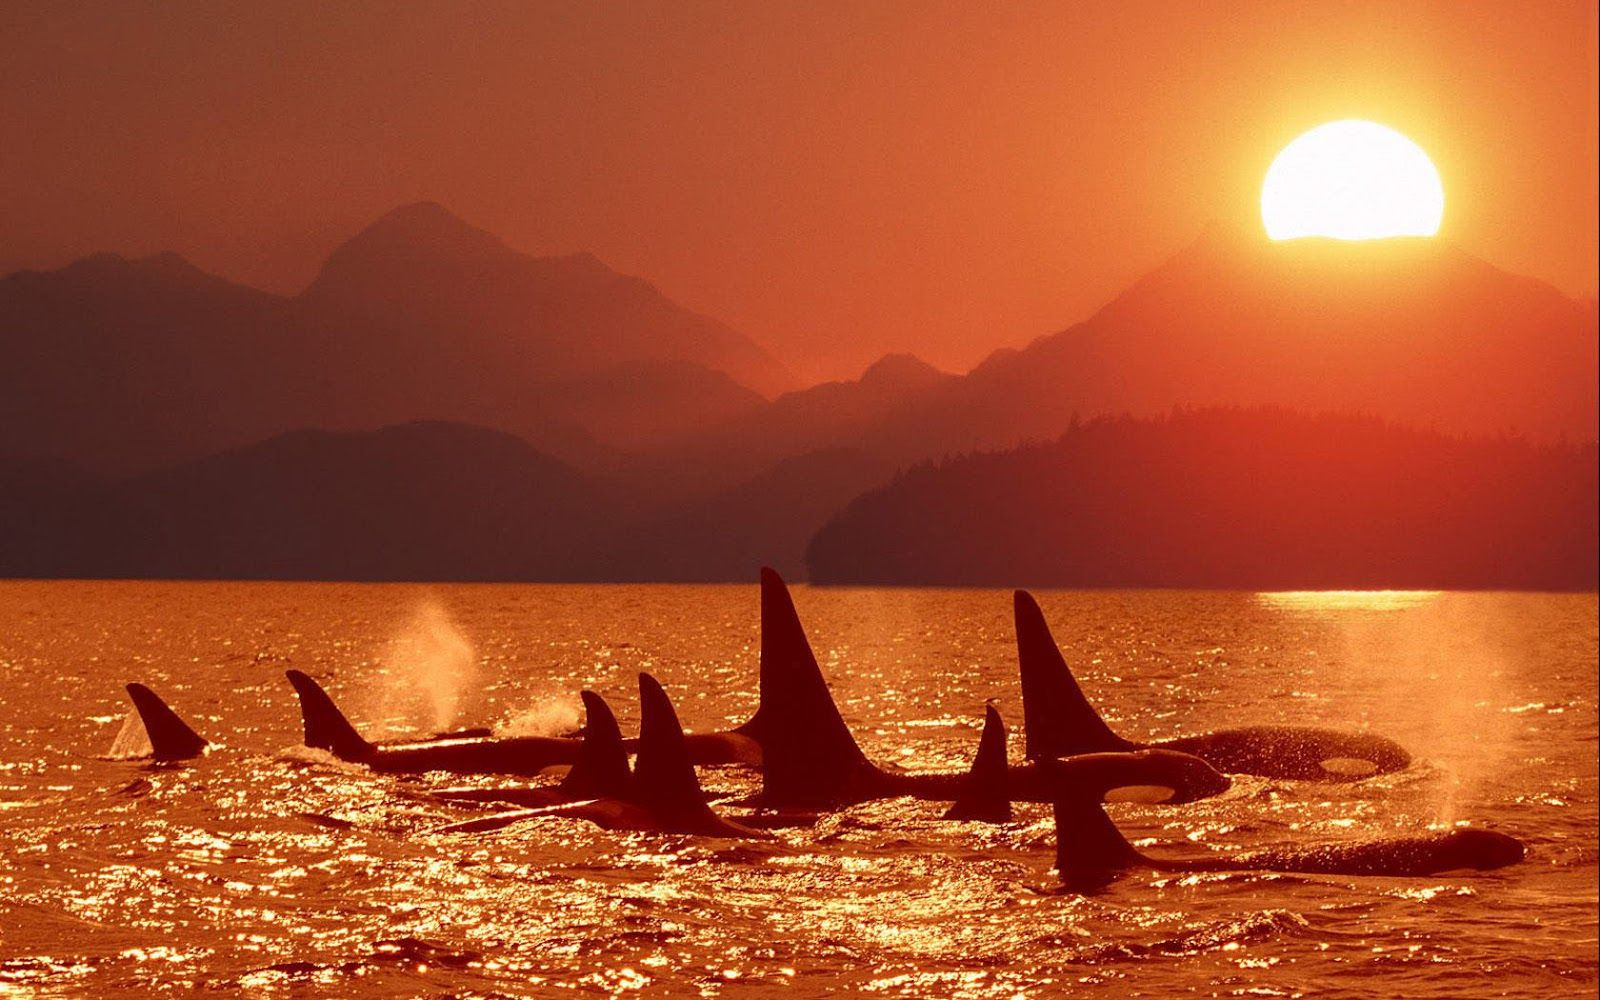 Orca whale wallpapers pictures 12801024 pictures of killer whales orca whale wallpapers pictures 12801024 pictures of killer whales wallpapers 49 wallpapers adorable wallpapers altavistaventures Gallery